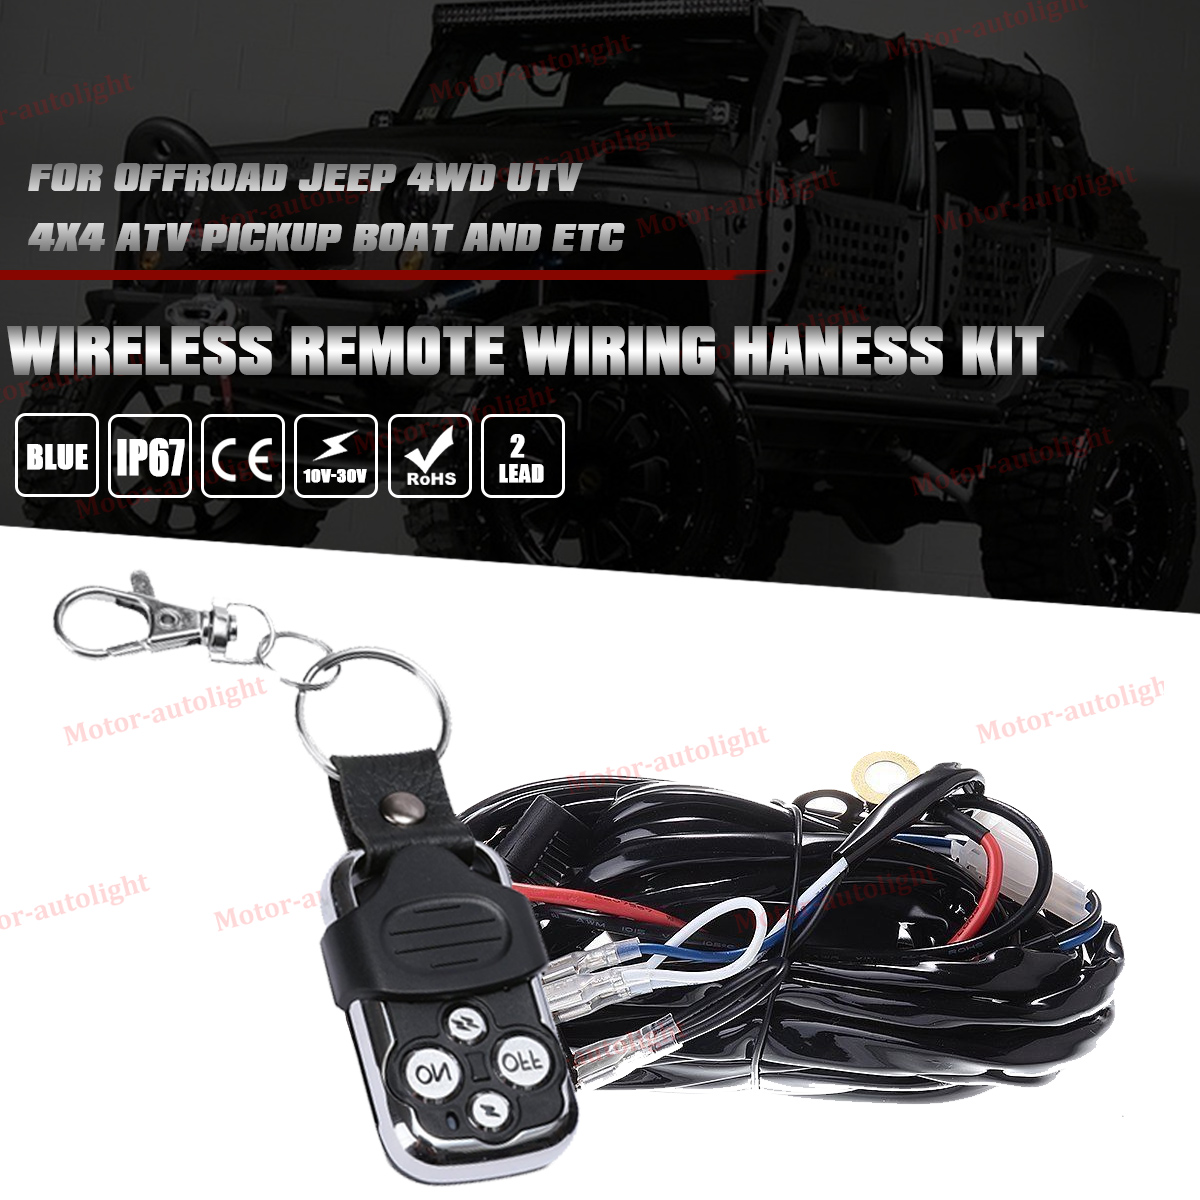 Led Light Bar Wiring Harness 40a 12v Relay Strobe Remote Control Car Blue Red Rocker Switch With Switch2 Lead